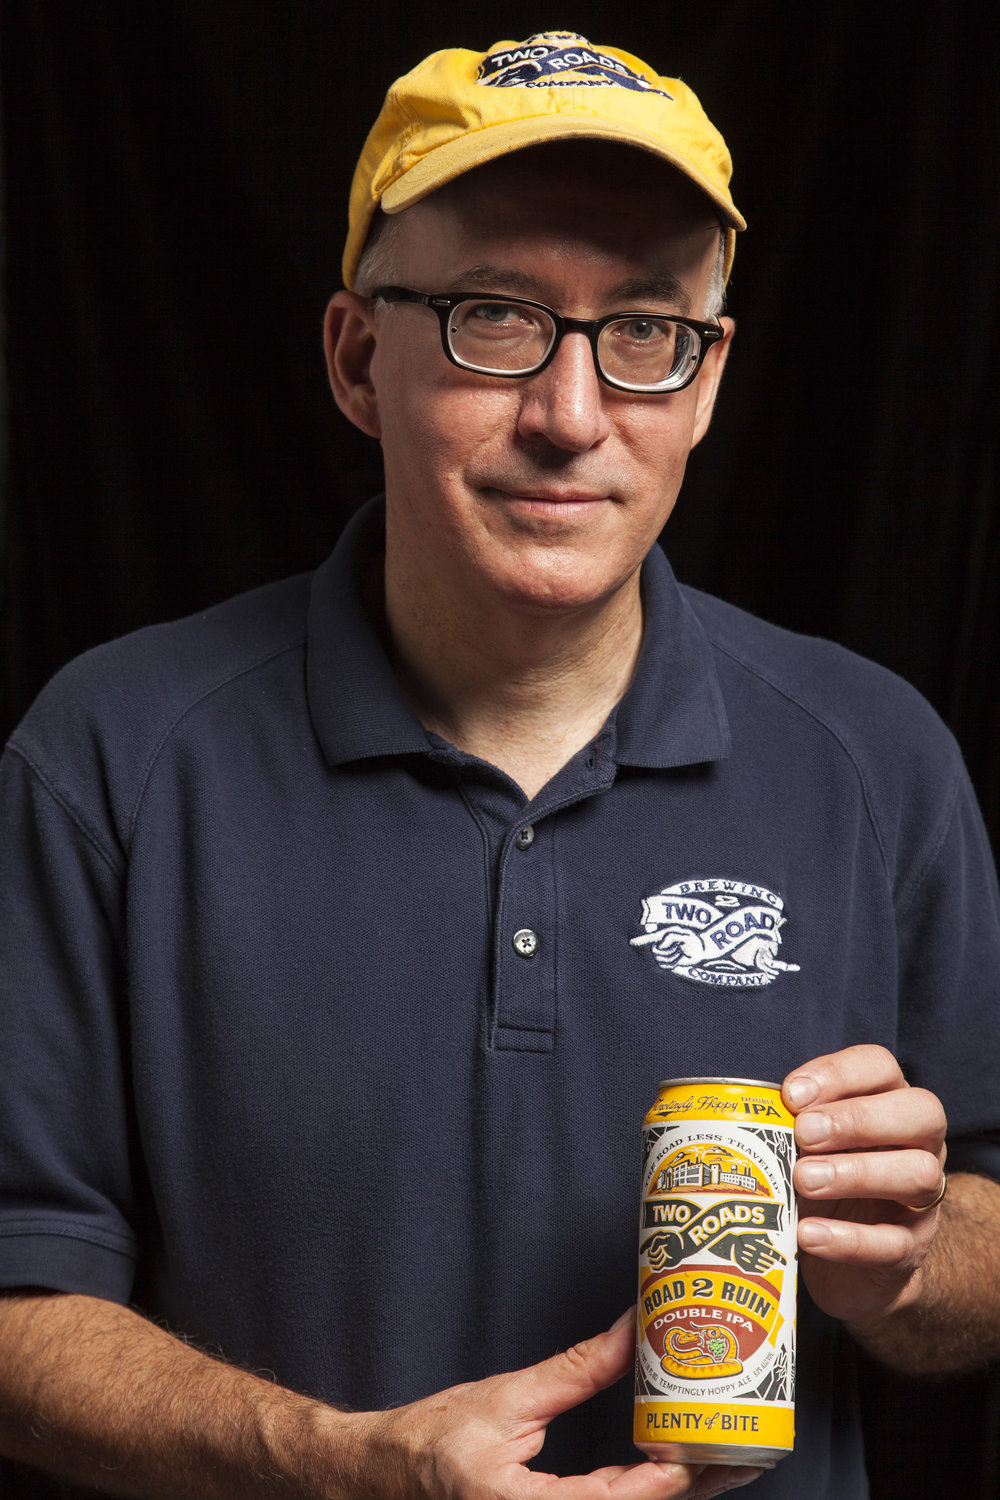 Phil Markowski, Brewmaster and Founding Partner Two Roads Brewing Co. Stratford, CT Established in 2012